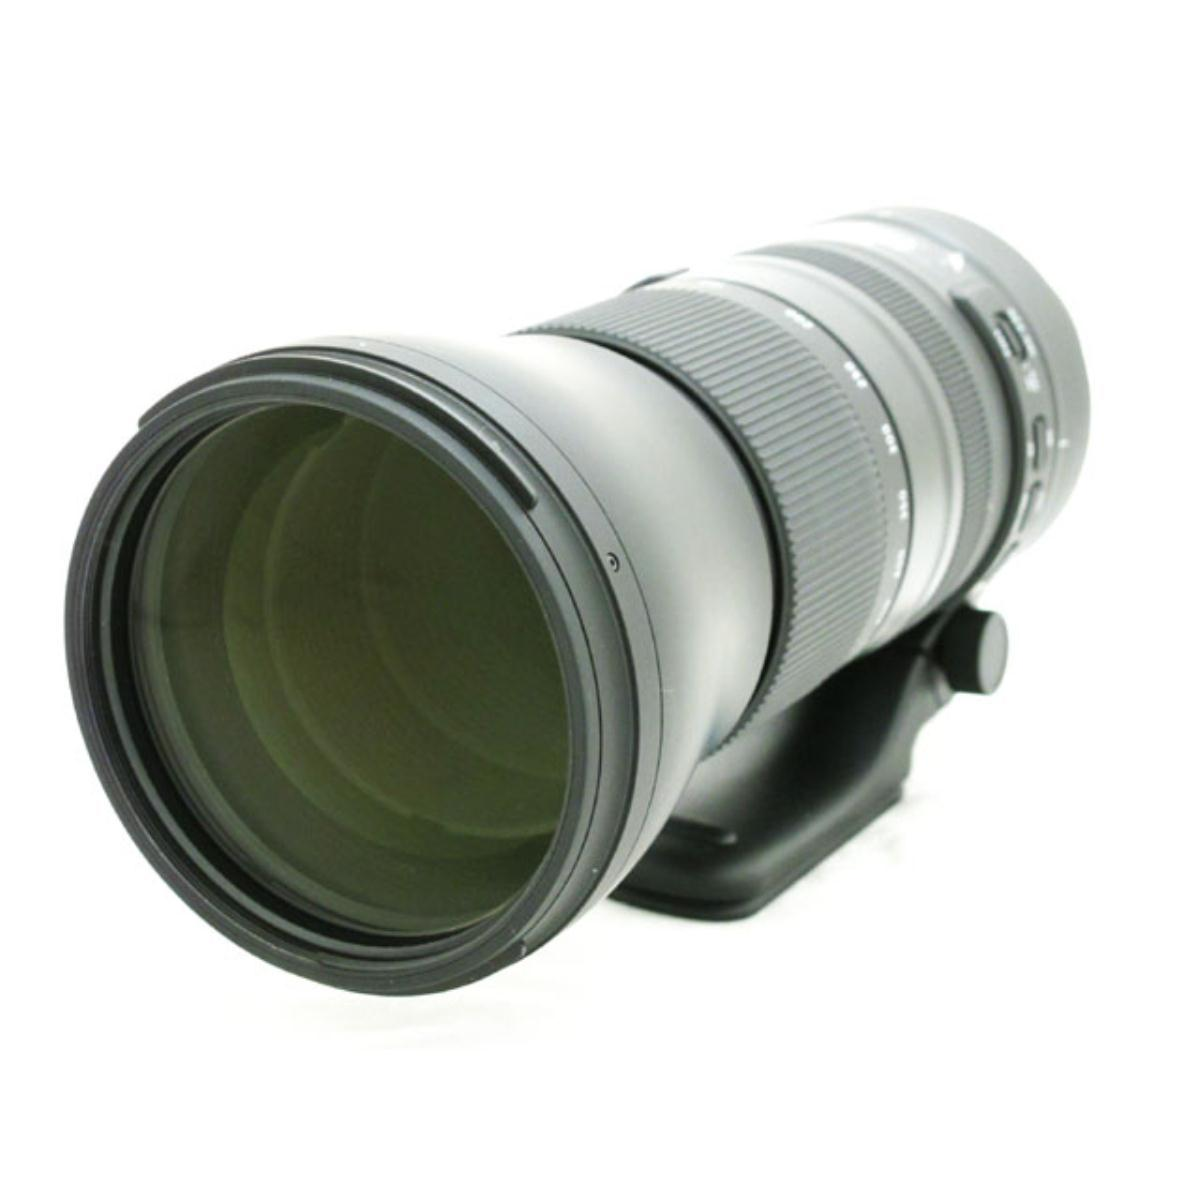 TAMRON ニコン150-600mm F5-6.3VCG2 A022【中古】